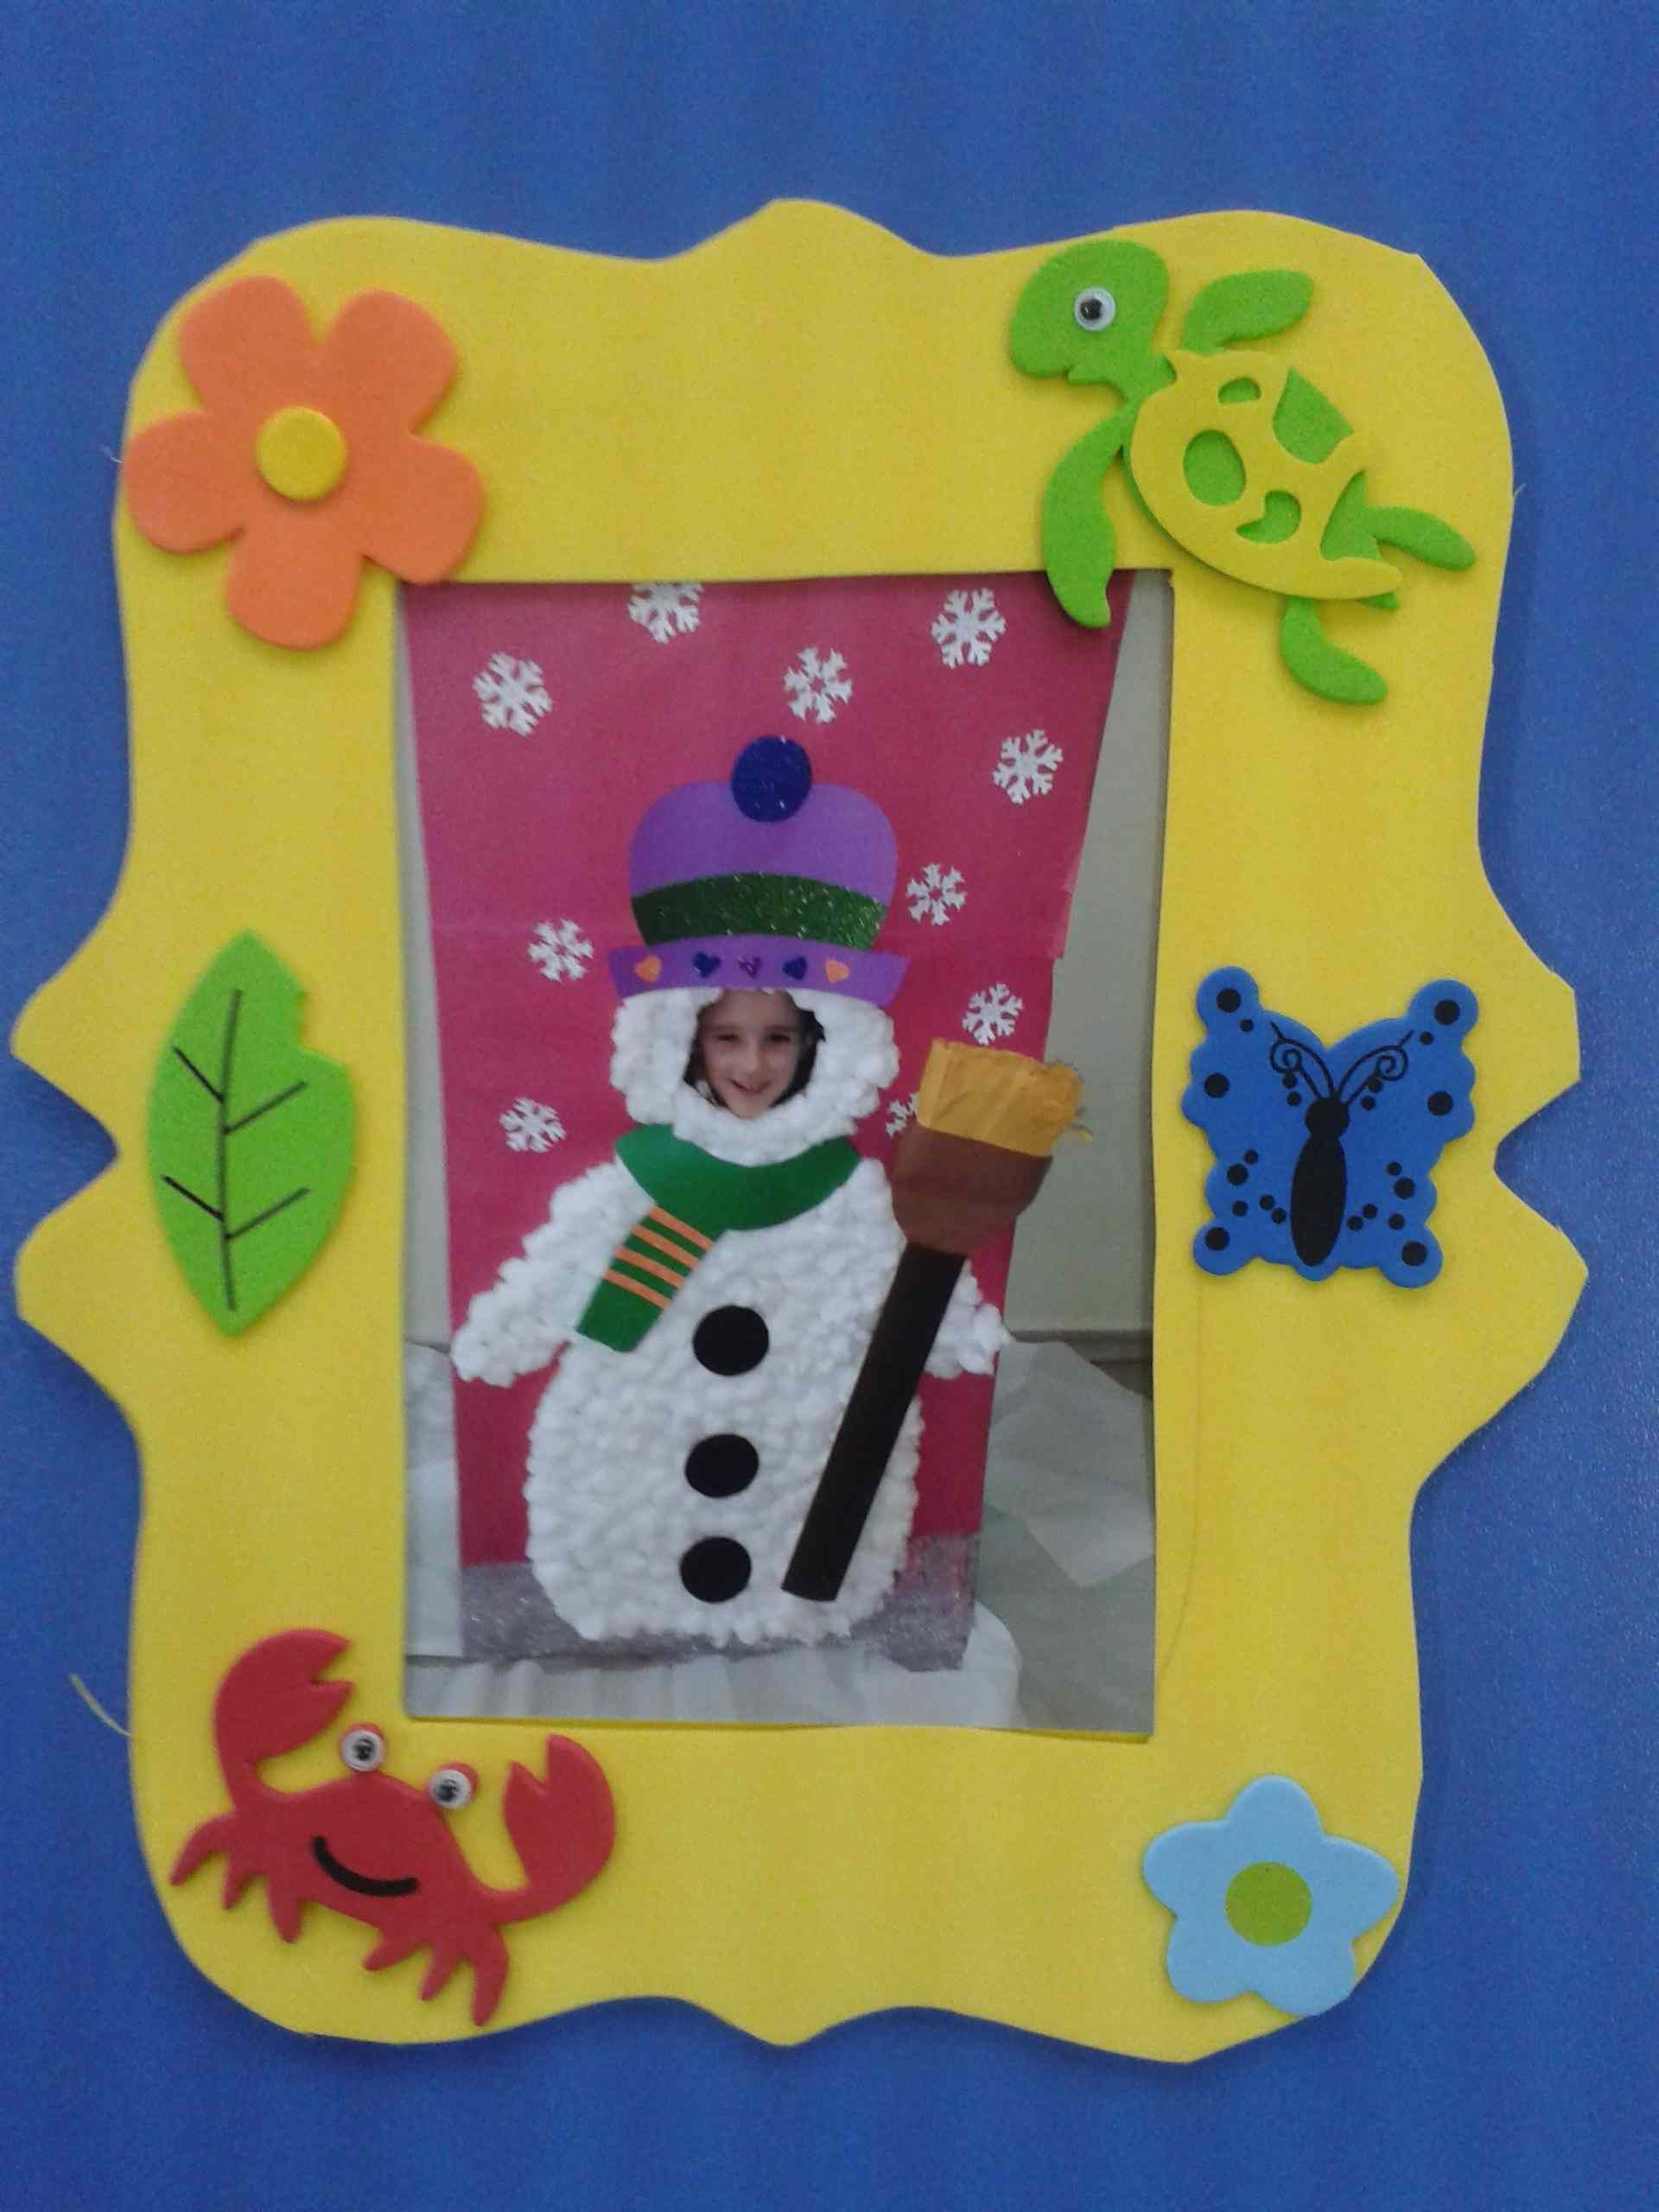 Frame craft idea for kids crafts and worksheets for preschool frame craft idea for kids crafts and worksheets for preschooltoddler and kindergarten jeuxipadfo Gallery